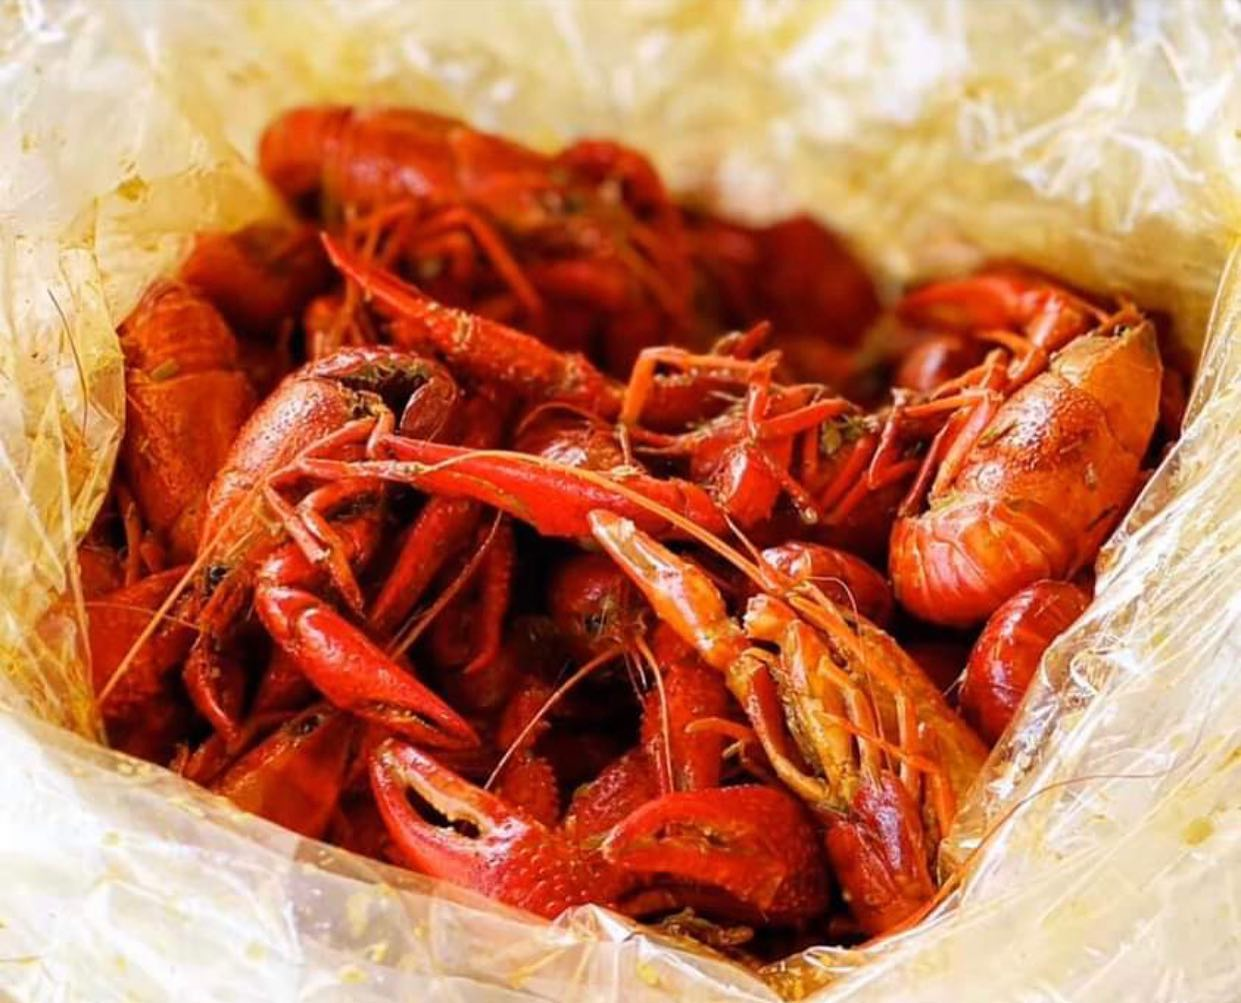 Malaysian Curry Crawfish to go at Phat Eatery in Katy